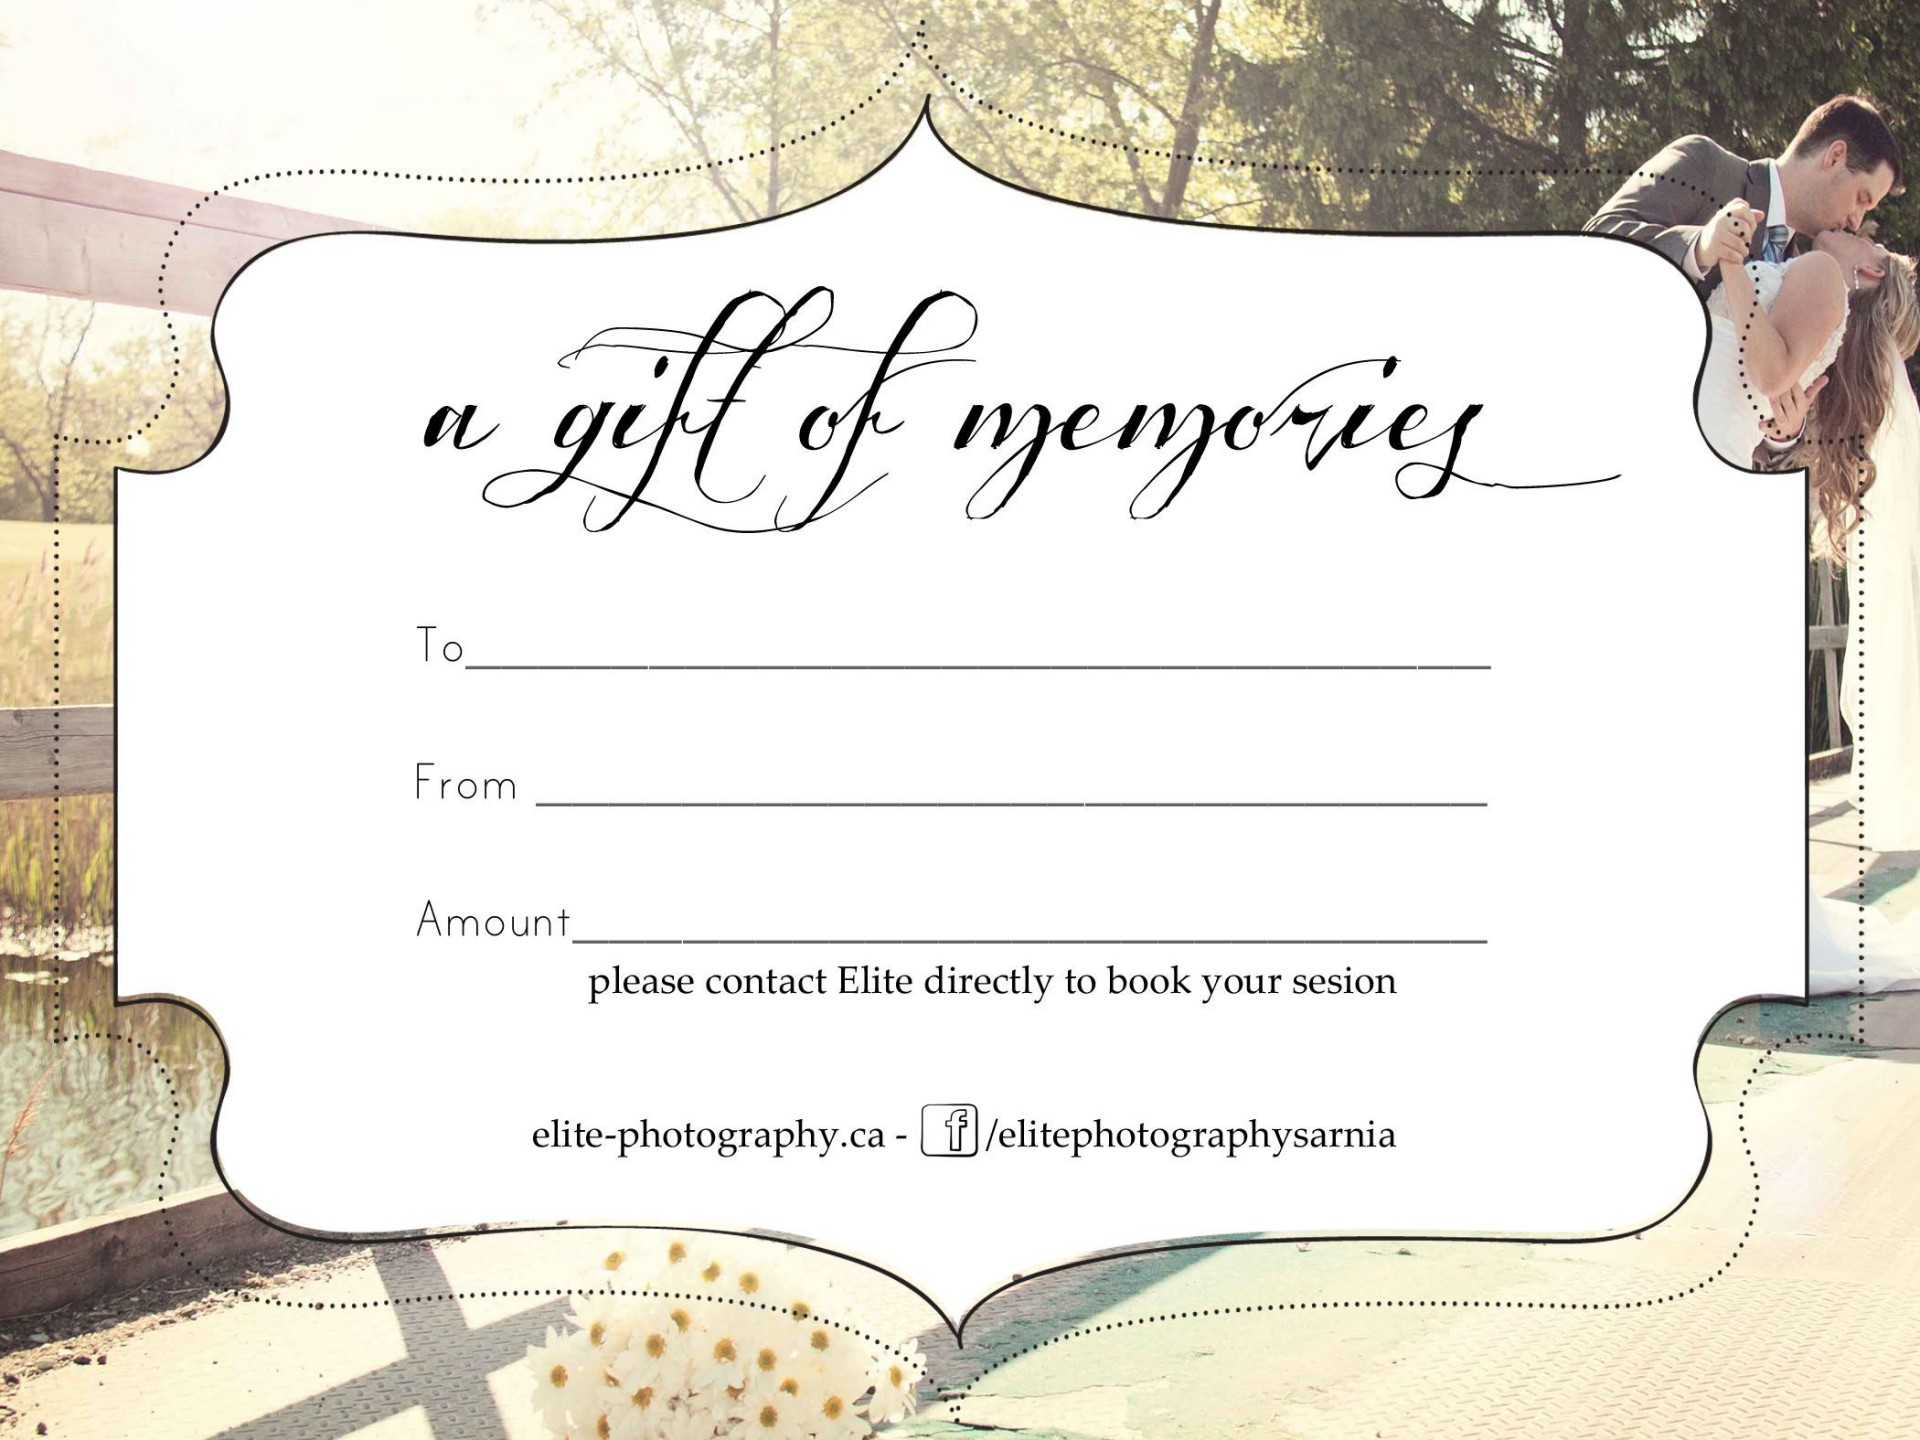 005 Awesome Photography Gift Certificate Template Photoshop Free High Resolution 1920